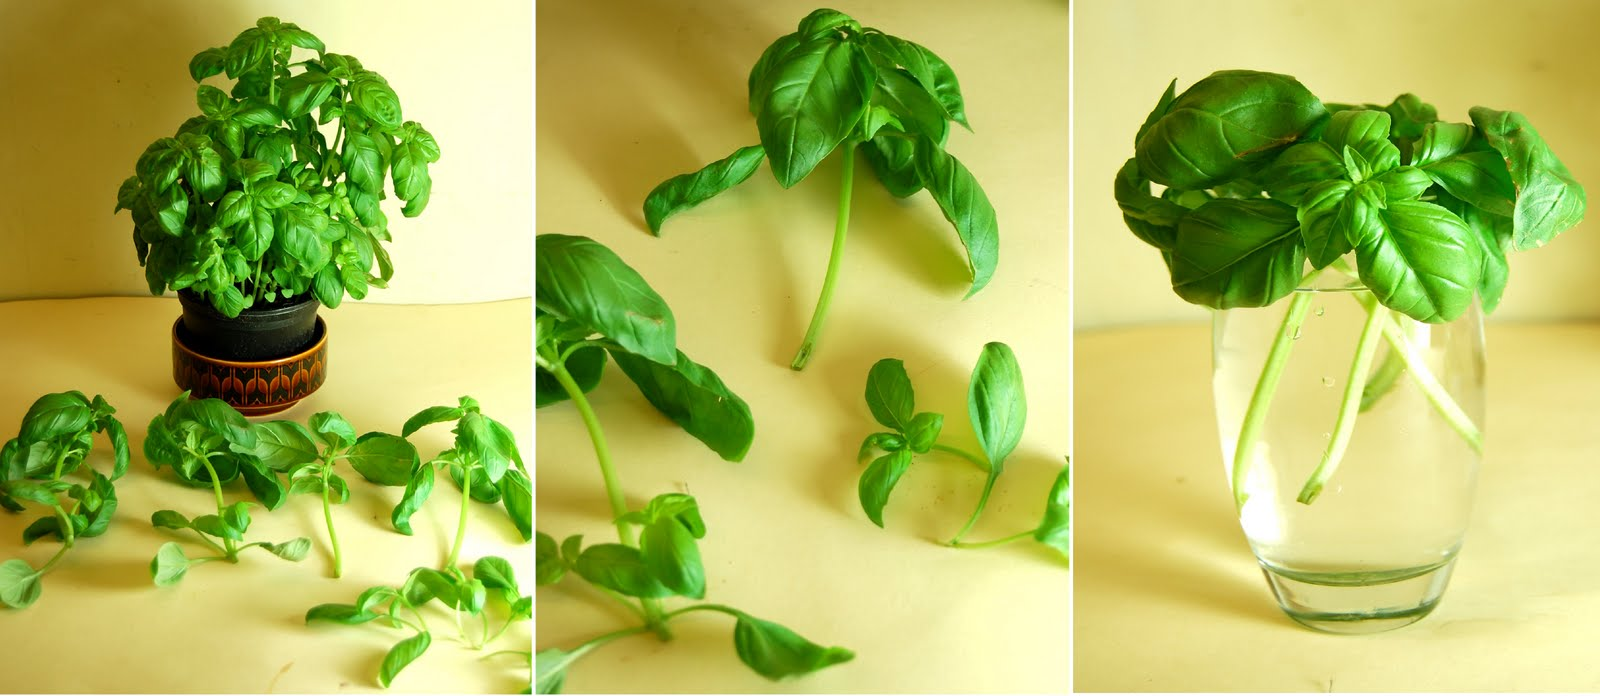 The Urban Gardener: Basil plants from cuttings